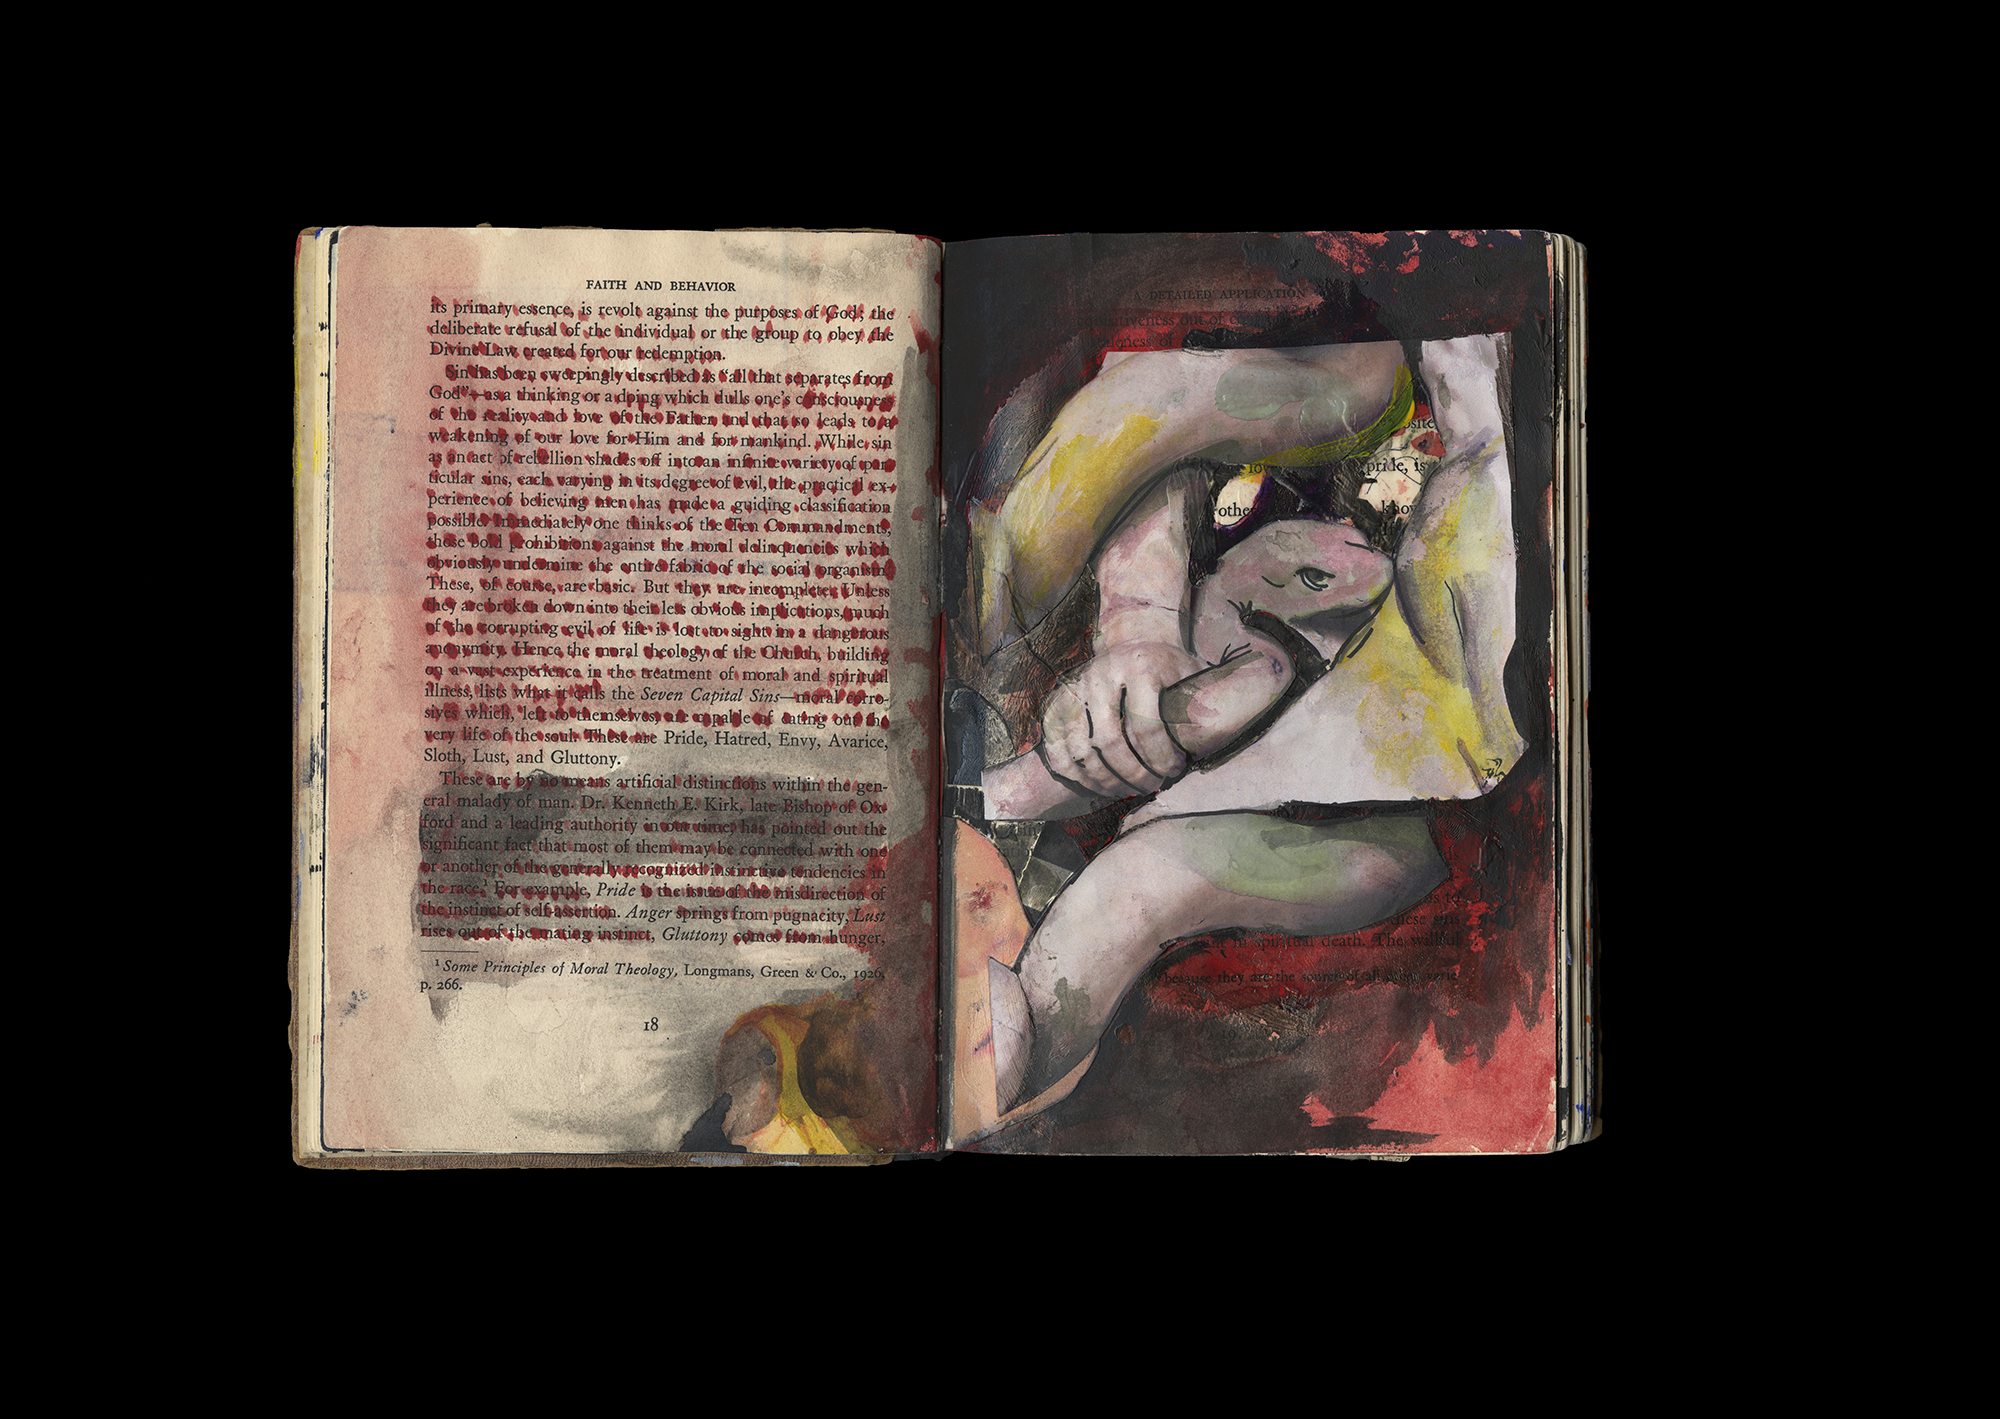 """Noah Steinmann  Altered Book, Faith, and Behavior  Acrylic, watercolor, matte medium, ink, and found images from """"The Grape"""" by Chad Walsh and Eric Montizambert  8.5"""" x 11''  2018"""